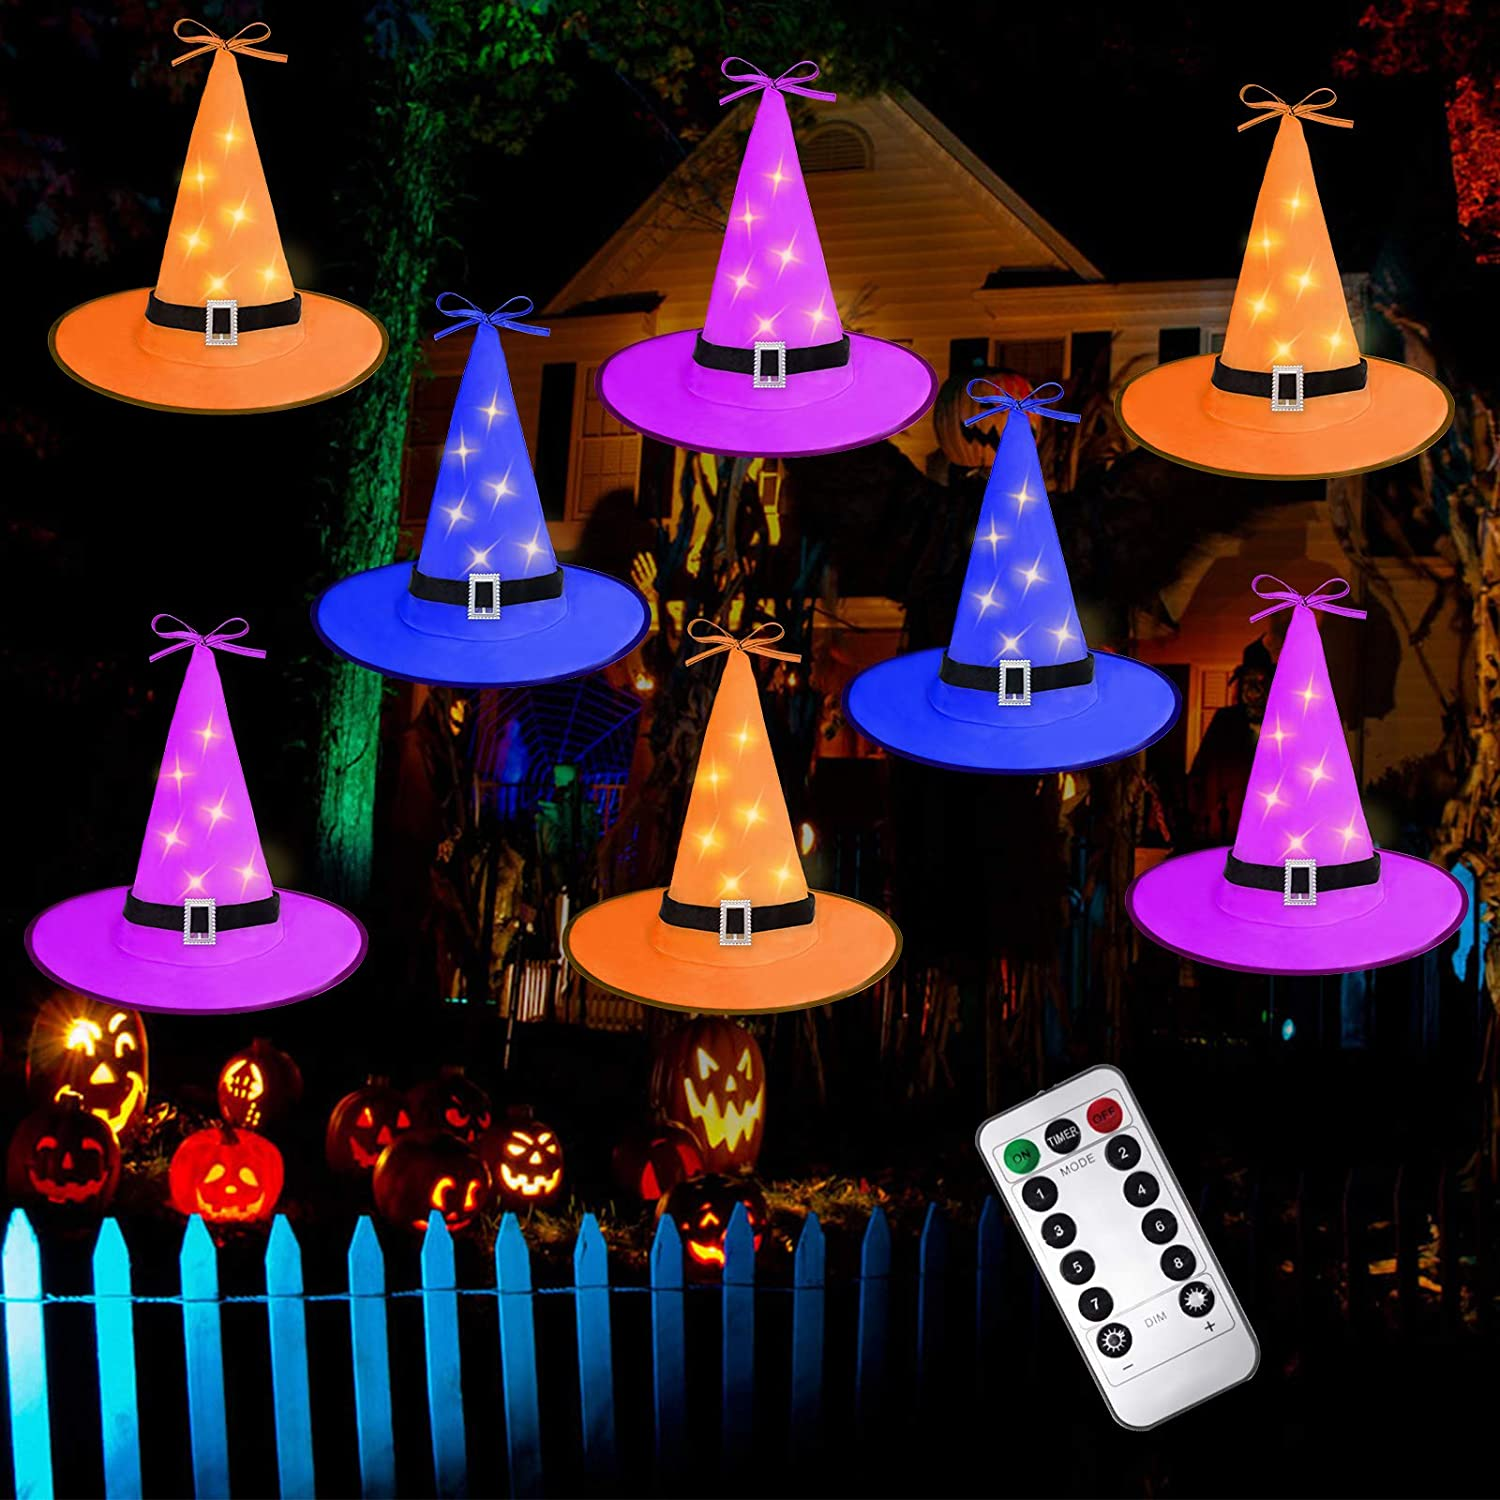 Ivenf NO DIY Halloween Witch Hat String Lights Decorations 8Pcs, 8 Modes Halloween Décor for Outdoor, Yard, Indoor, Tree(Purple/Orange/Blue)